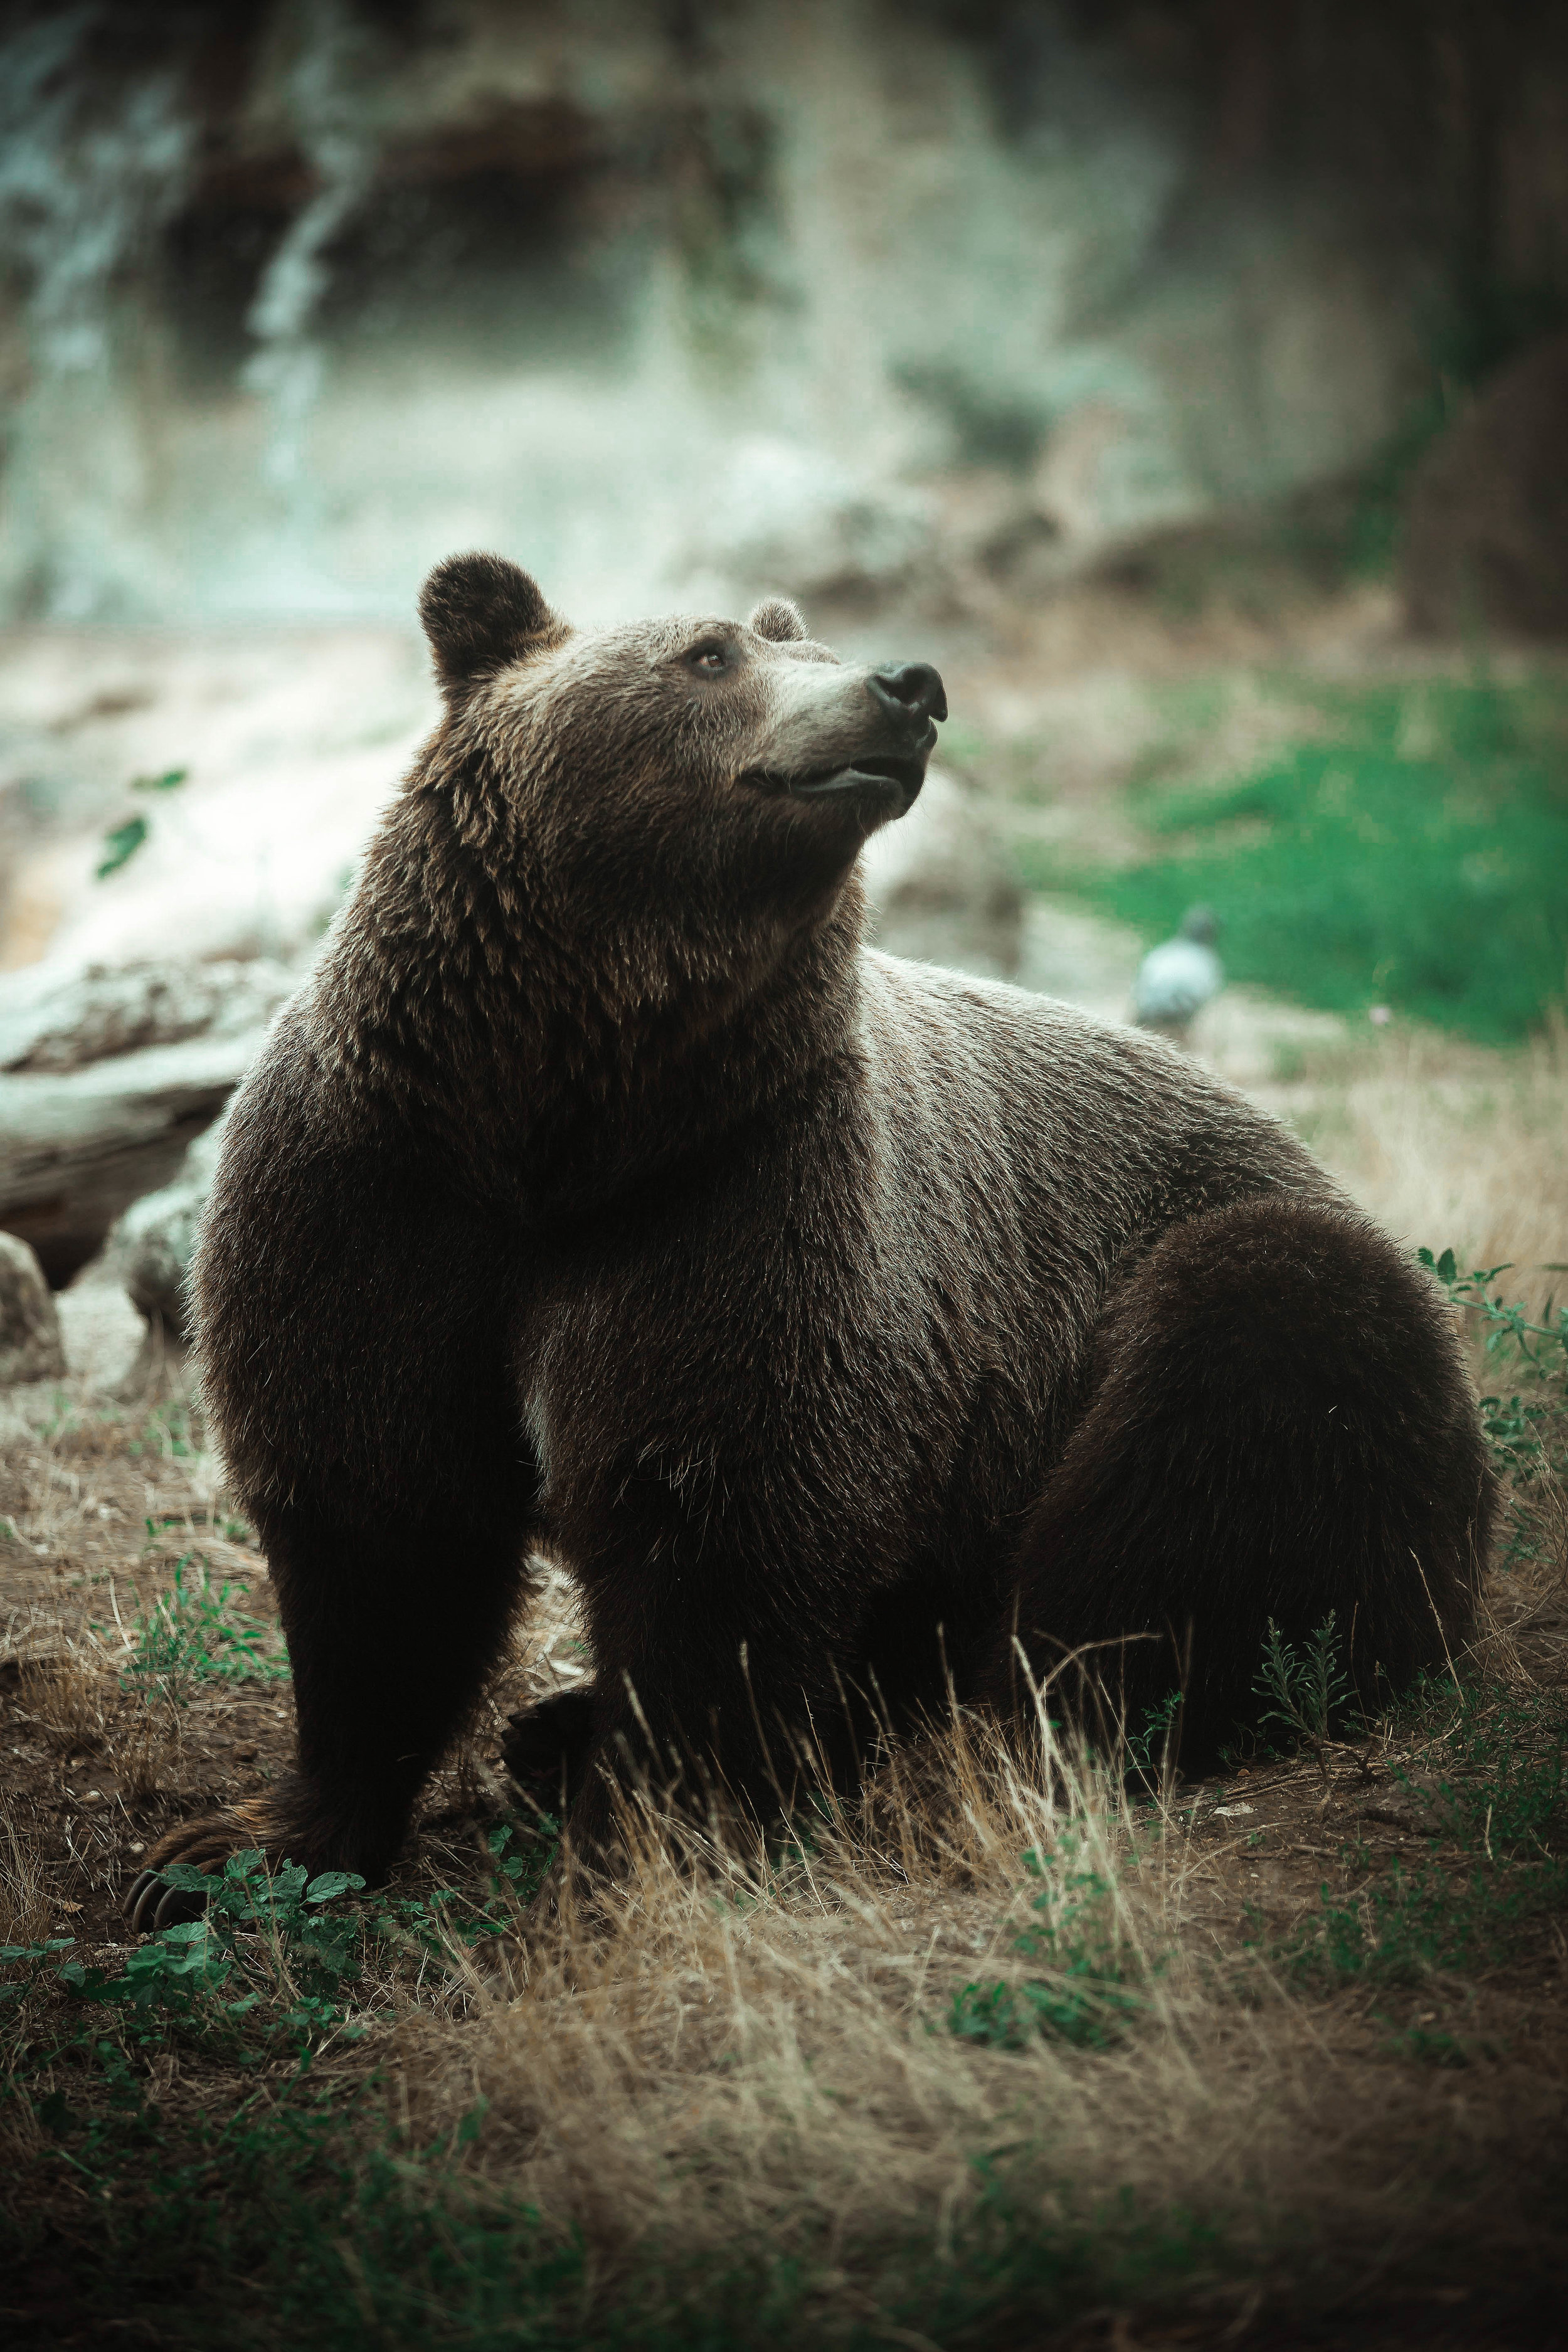 """""""Bear Proof"""" Estate Planning means planning for every eventuality with a well drafted estate plan from your attorney. The Law Office of Nathaniel Gilbert, LLC knows that unpredictable legal fees are a barrier to effective estate planning, and offers flat fee packages attractive to everyone."""